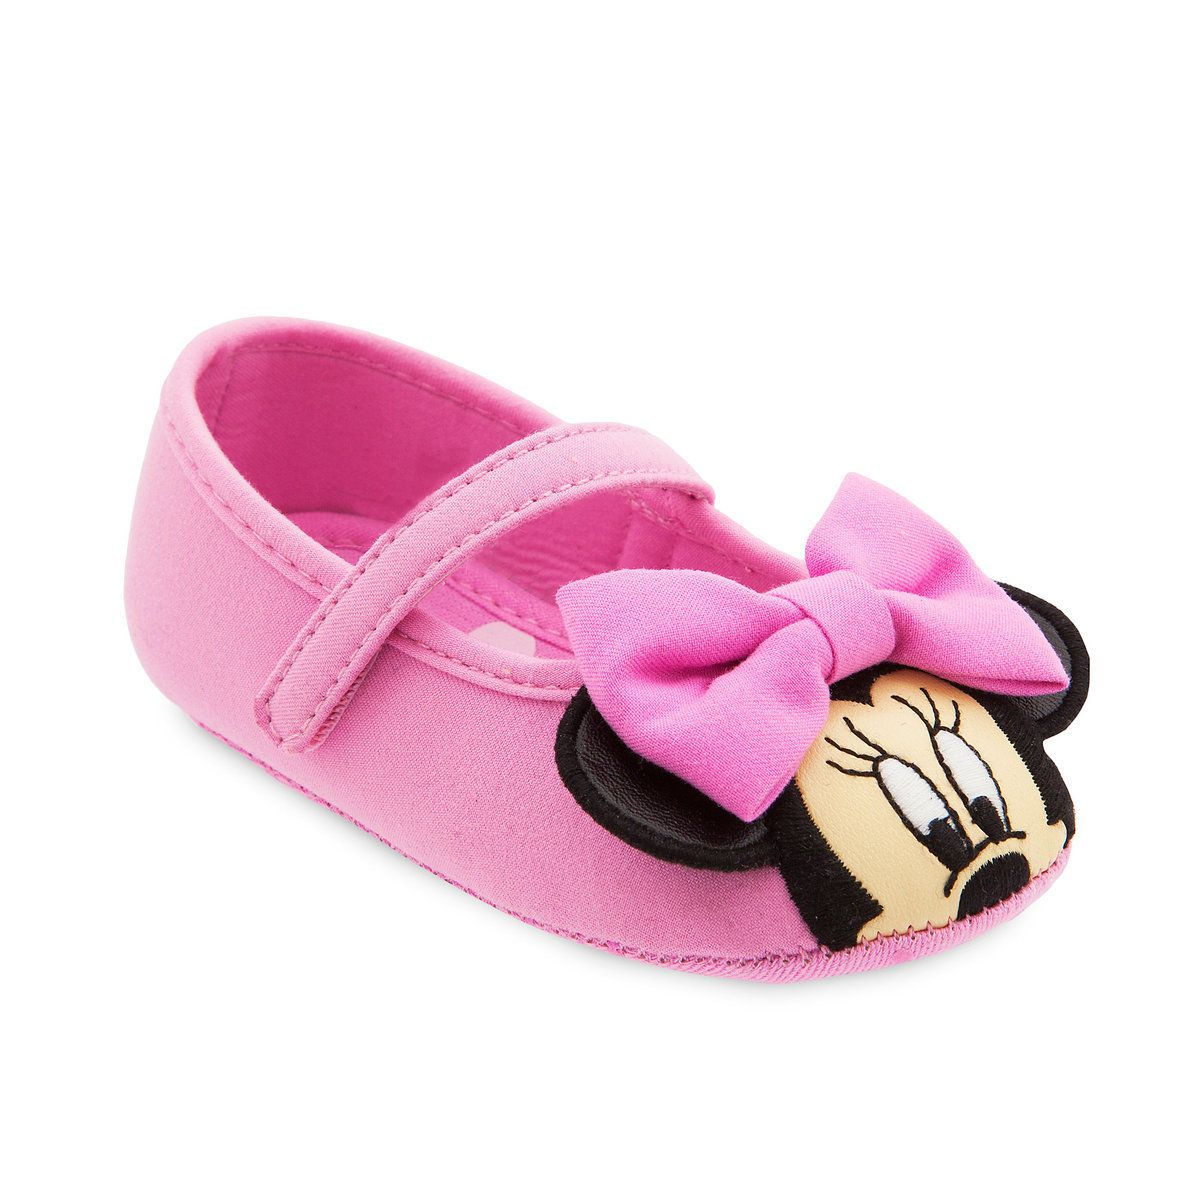 7d4557eb114f6 Product Image of Minnie Mouse Costume Shoes for Baby - Pink   1